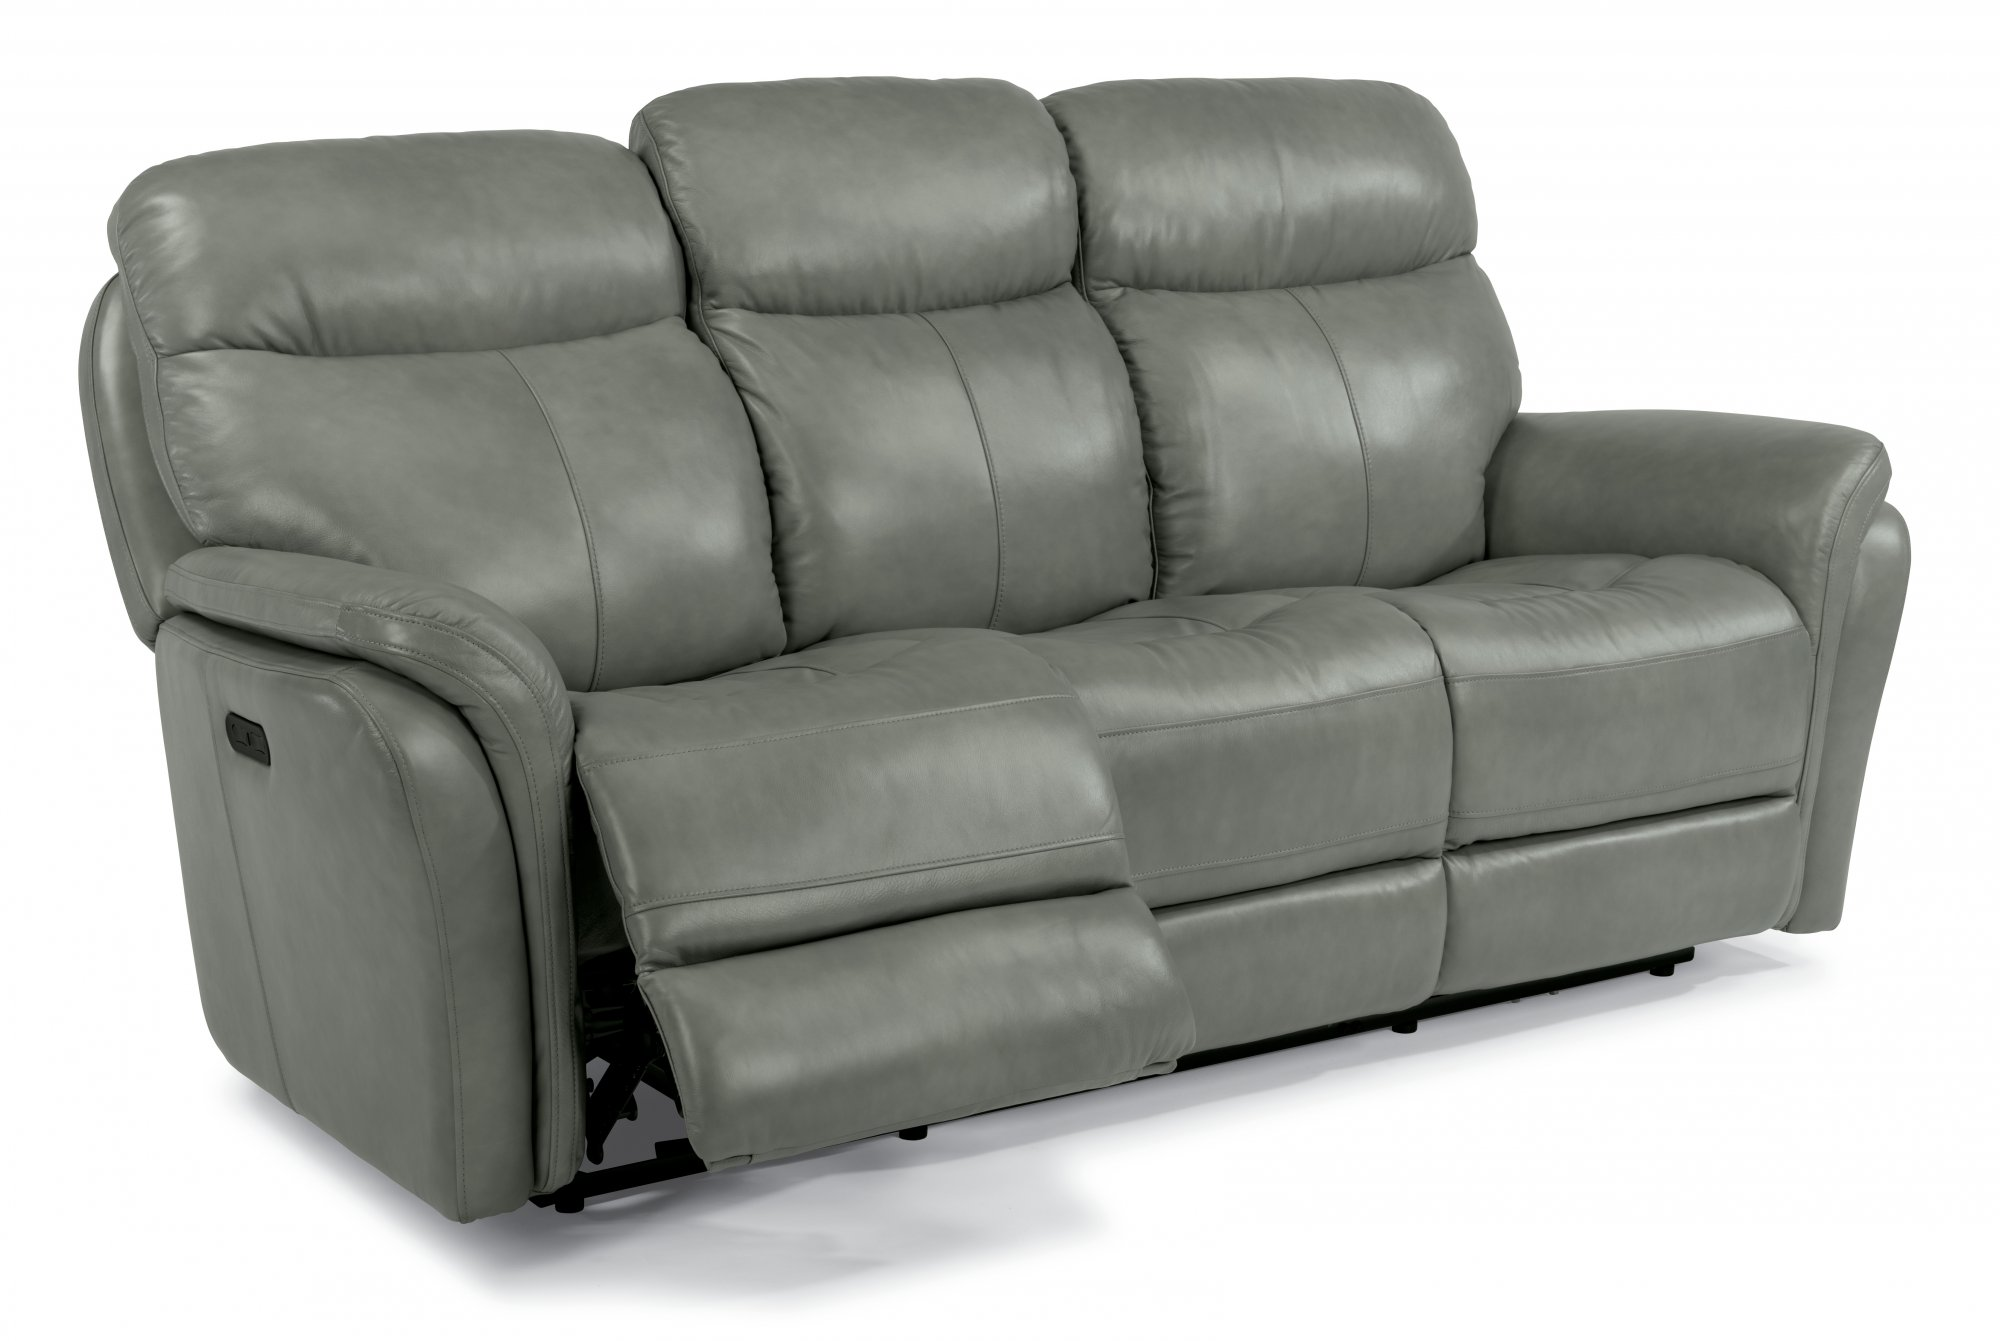 Leather Power Reclining Sofa with Power Headrests  sc 1 st  Flexsteel : reclining leather couches - islam-shia.org